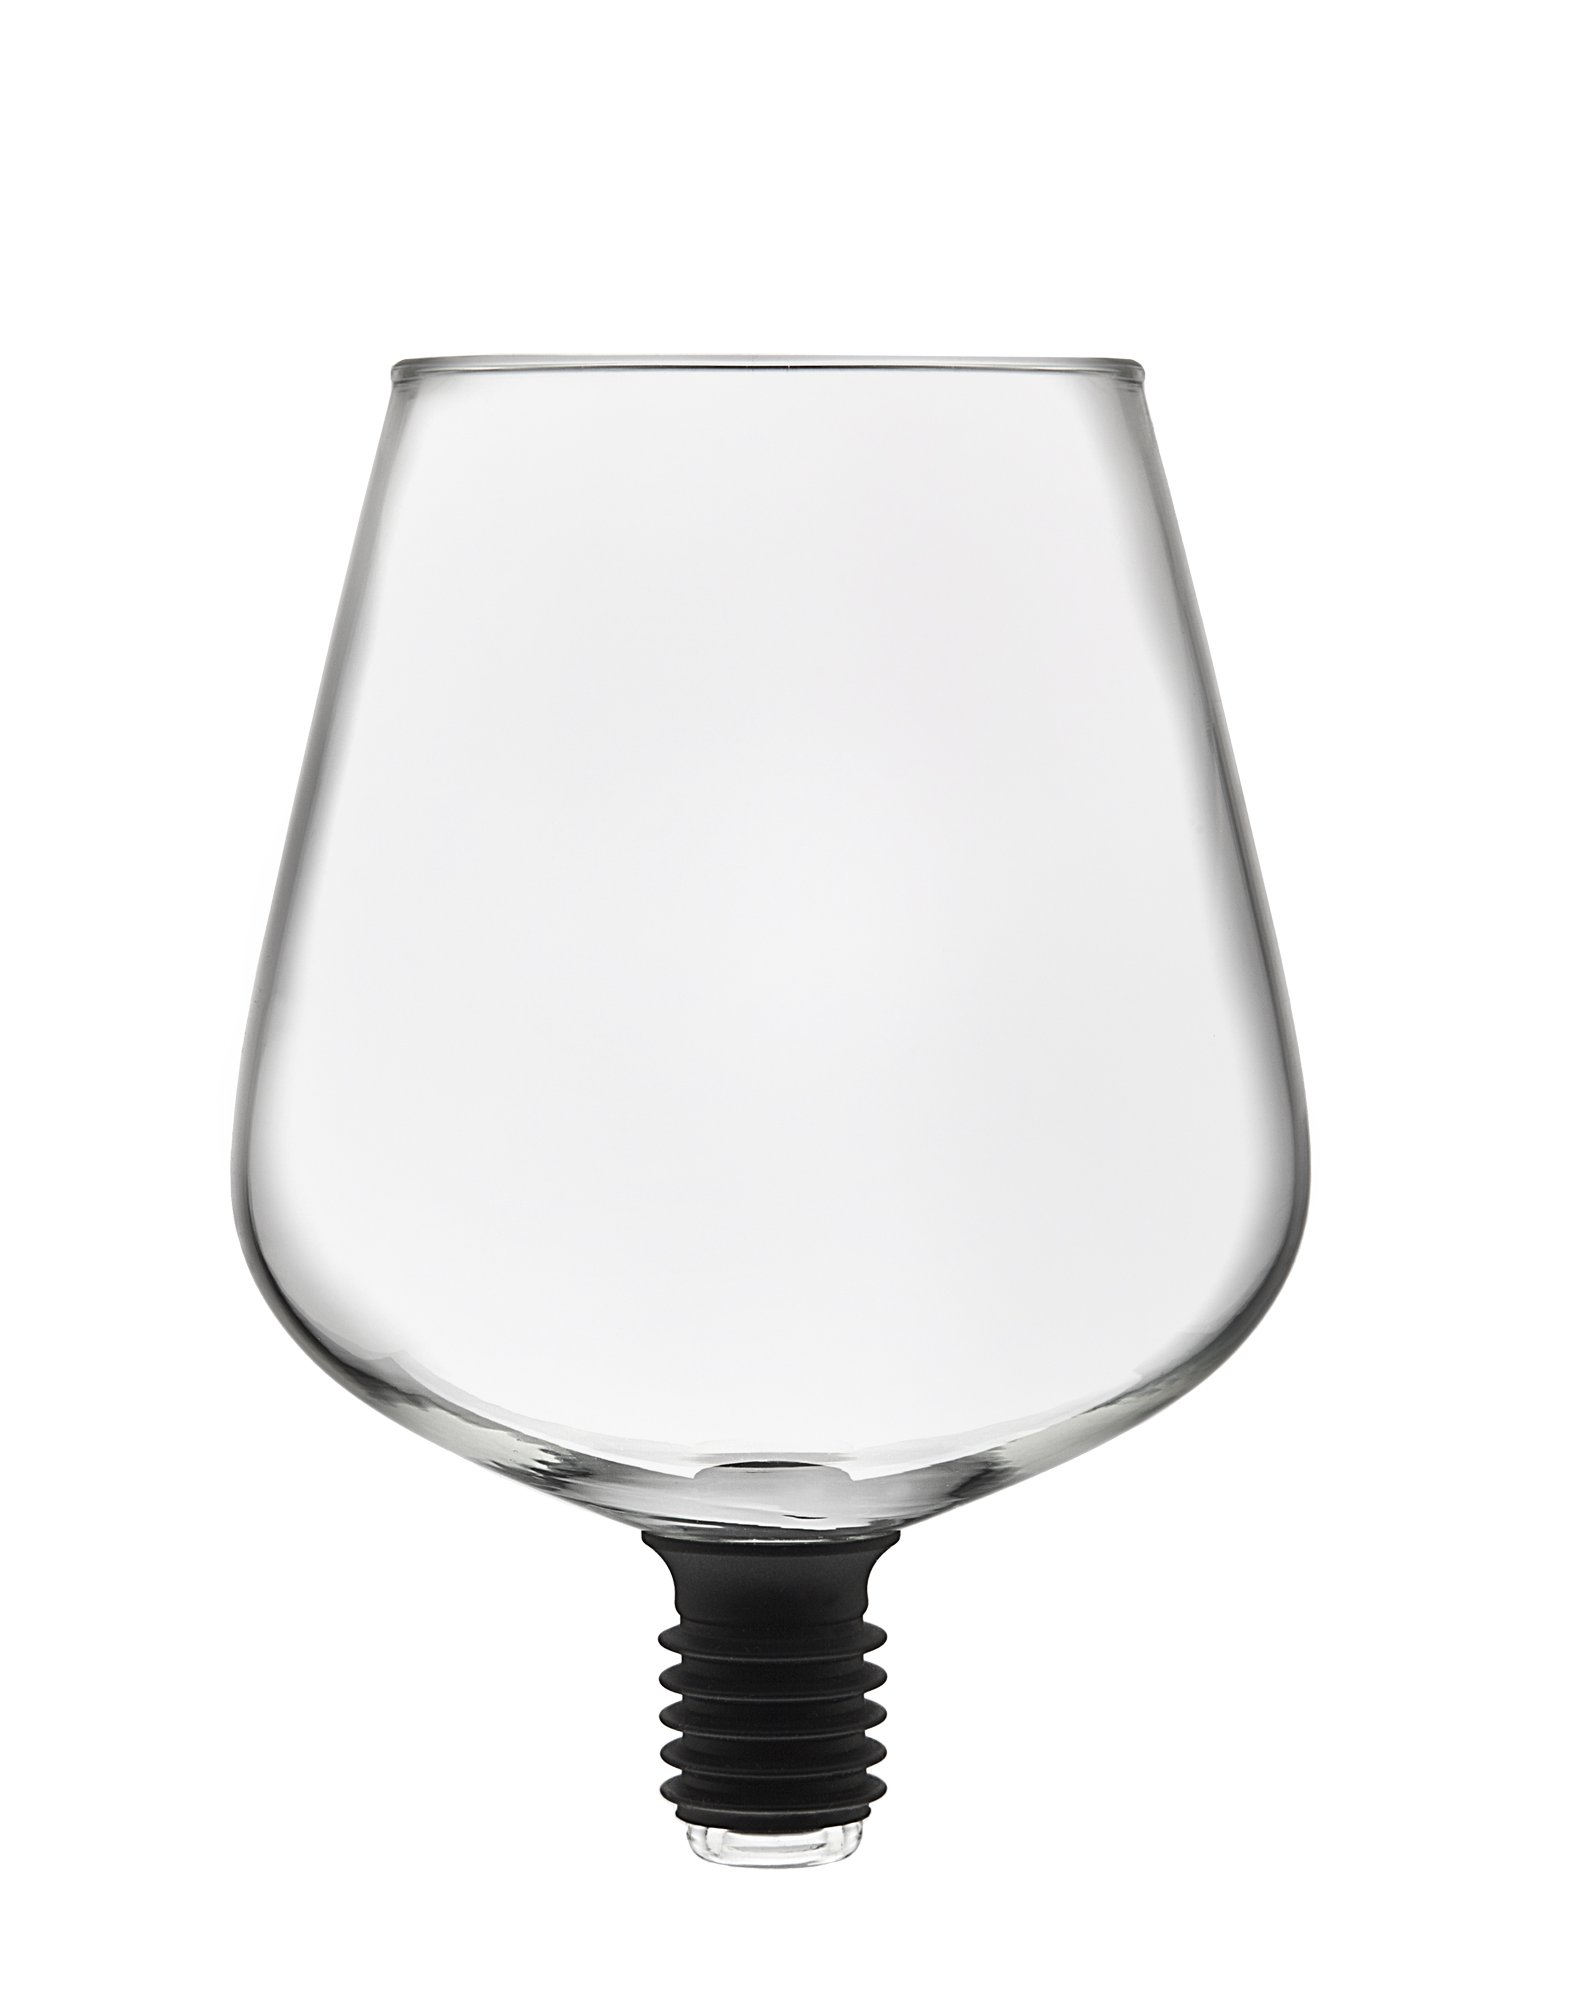 Godinger 22103 Chugmate Wine Glass Topper, the Goblet to Drink Straight from the Bottle, 8 oz, Clear by Godinger (Image #1)